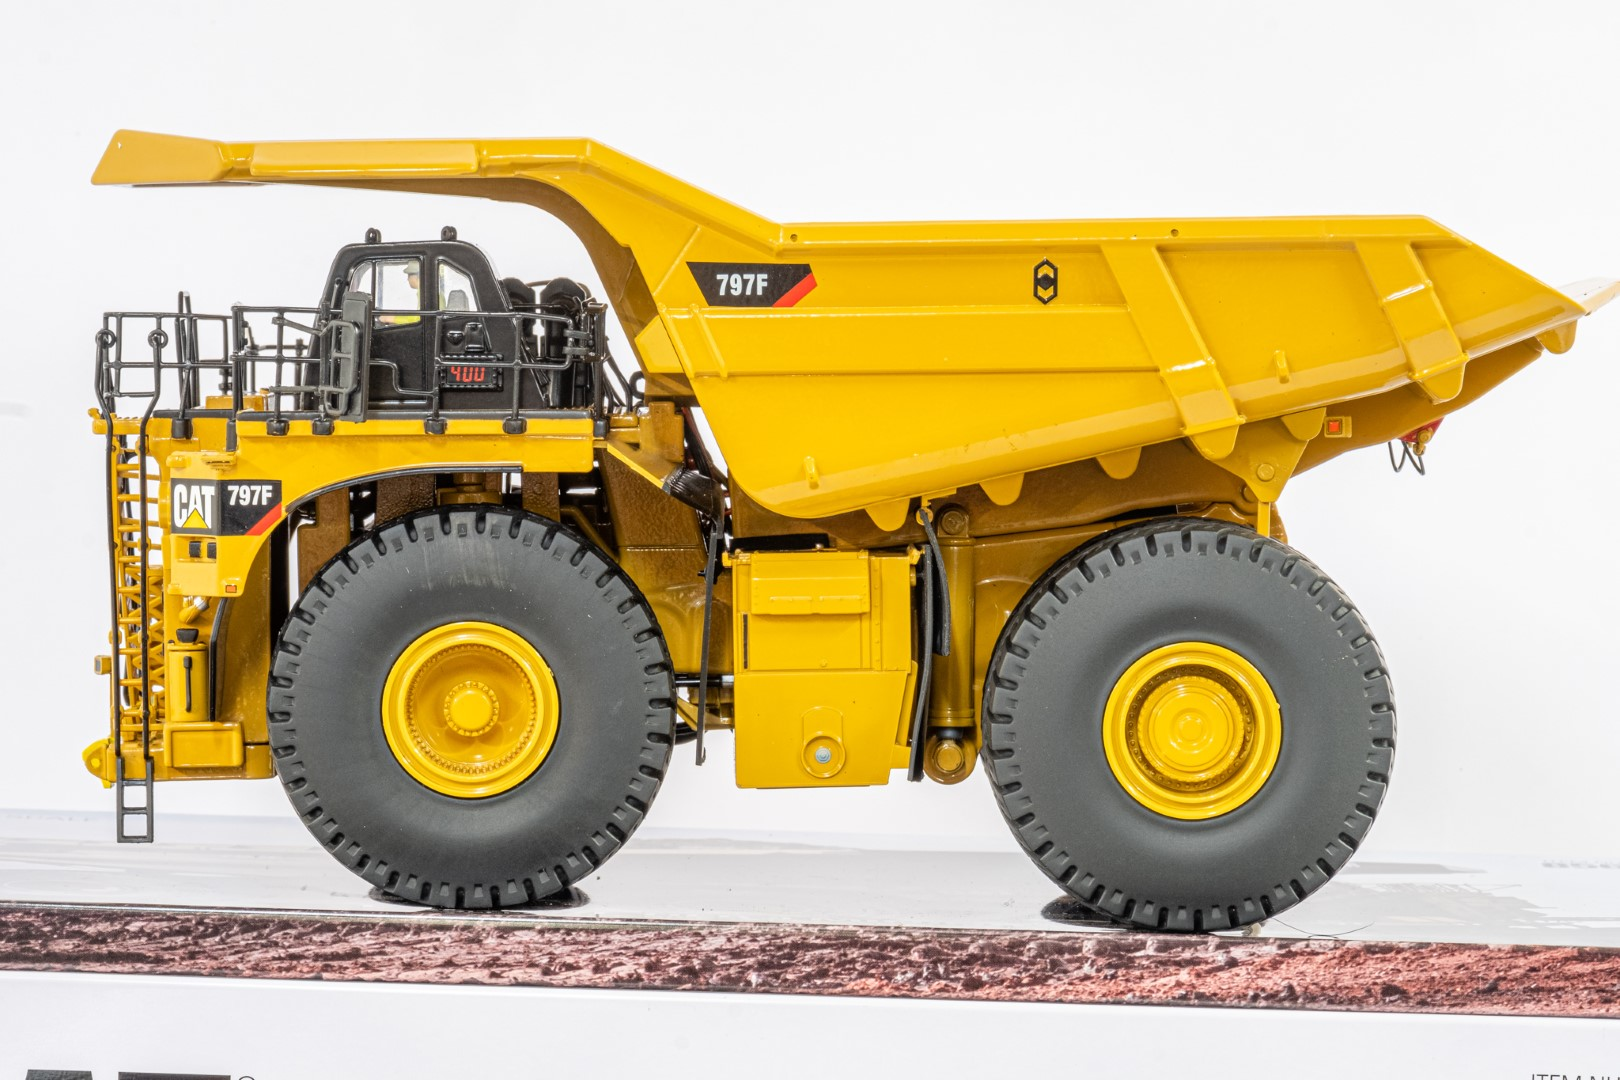 Diecast Masters CAT 797F Tier 4 Mining Truck - Mint condition - Image 2 of 6